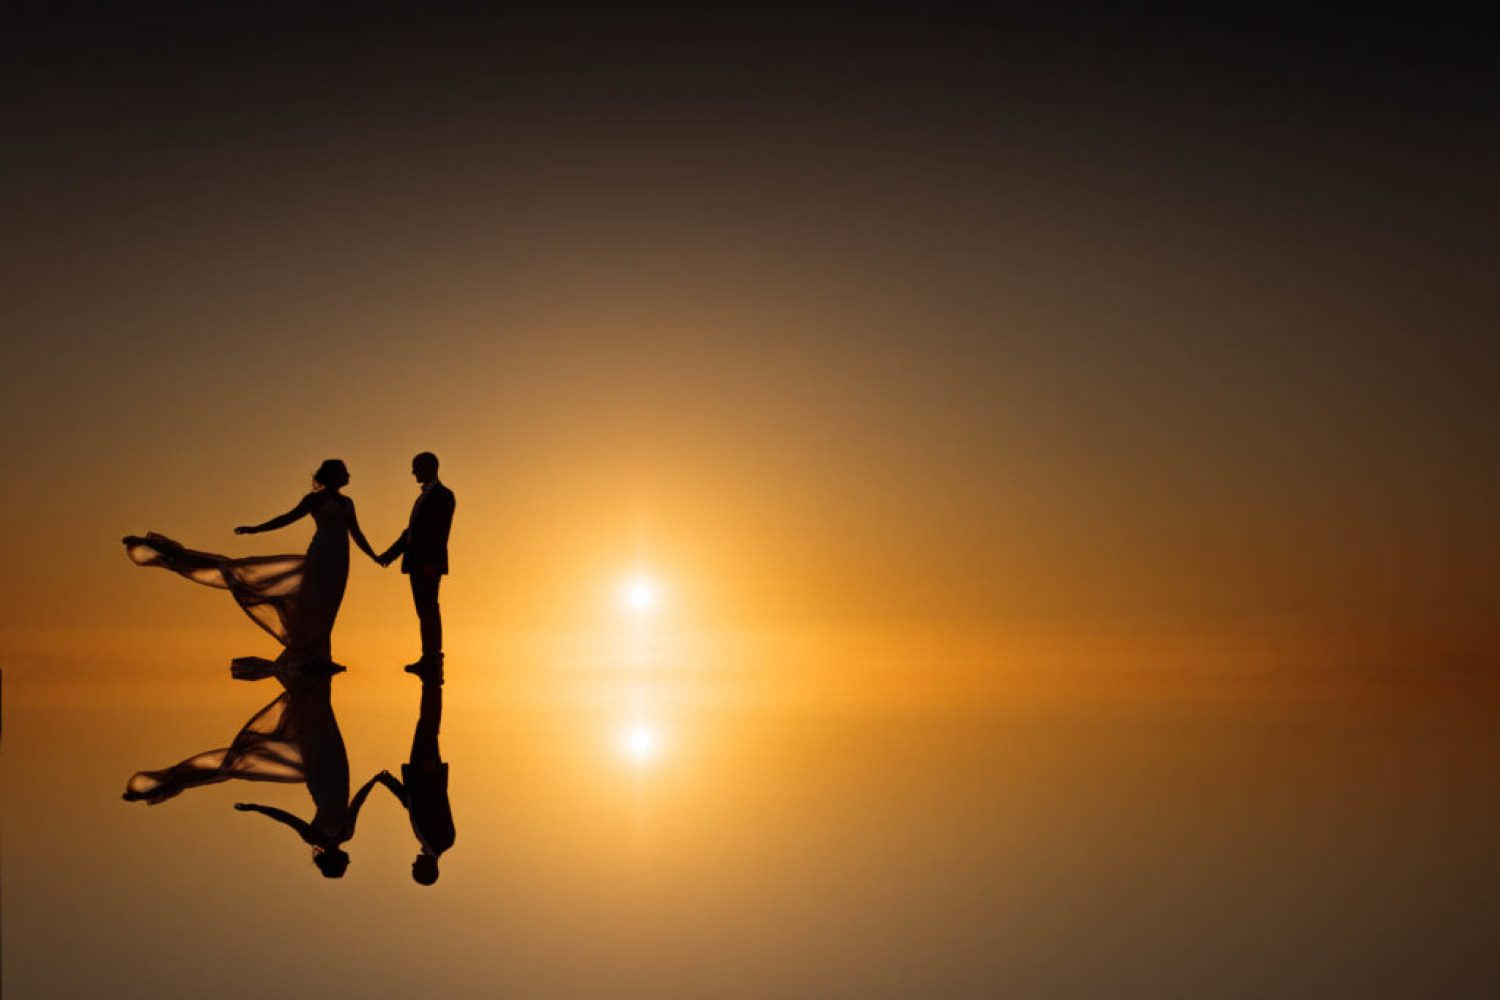 Lancashire Wedding Photographer - Golden sunset with Bride and Groom silhouttes which are reflected at Formby Beach and Squirrel Park